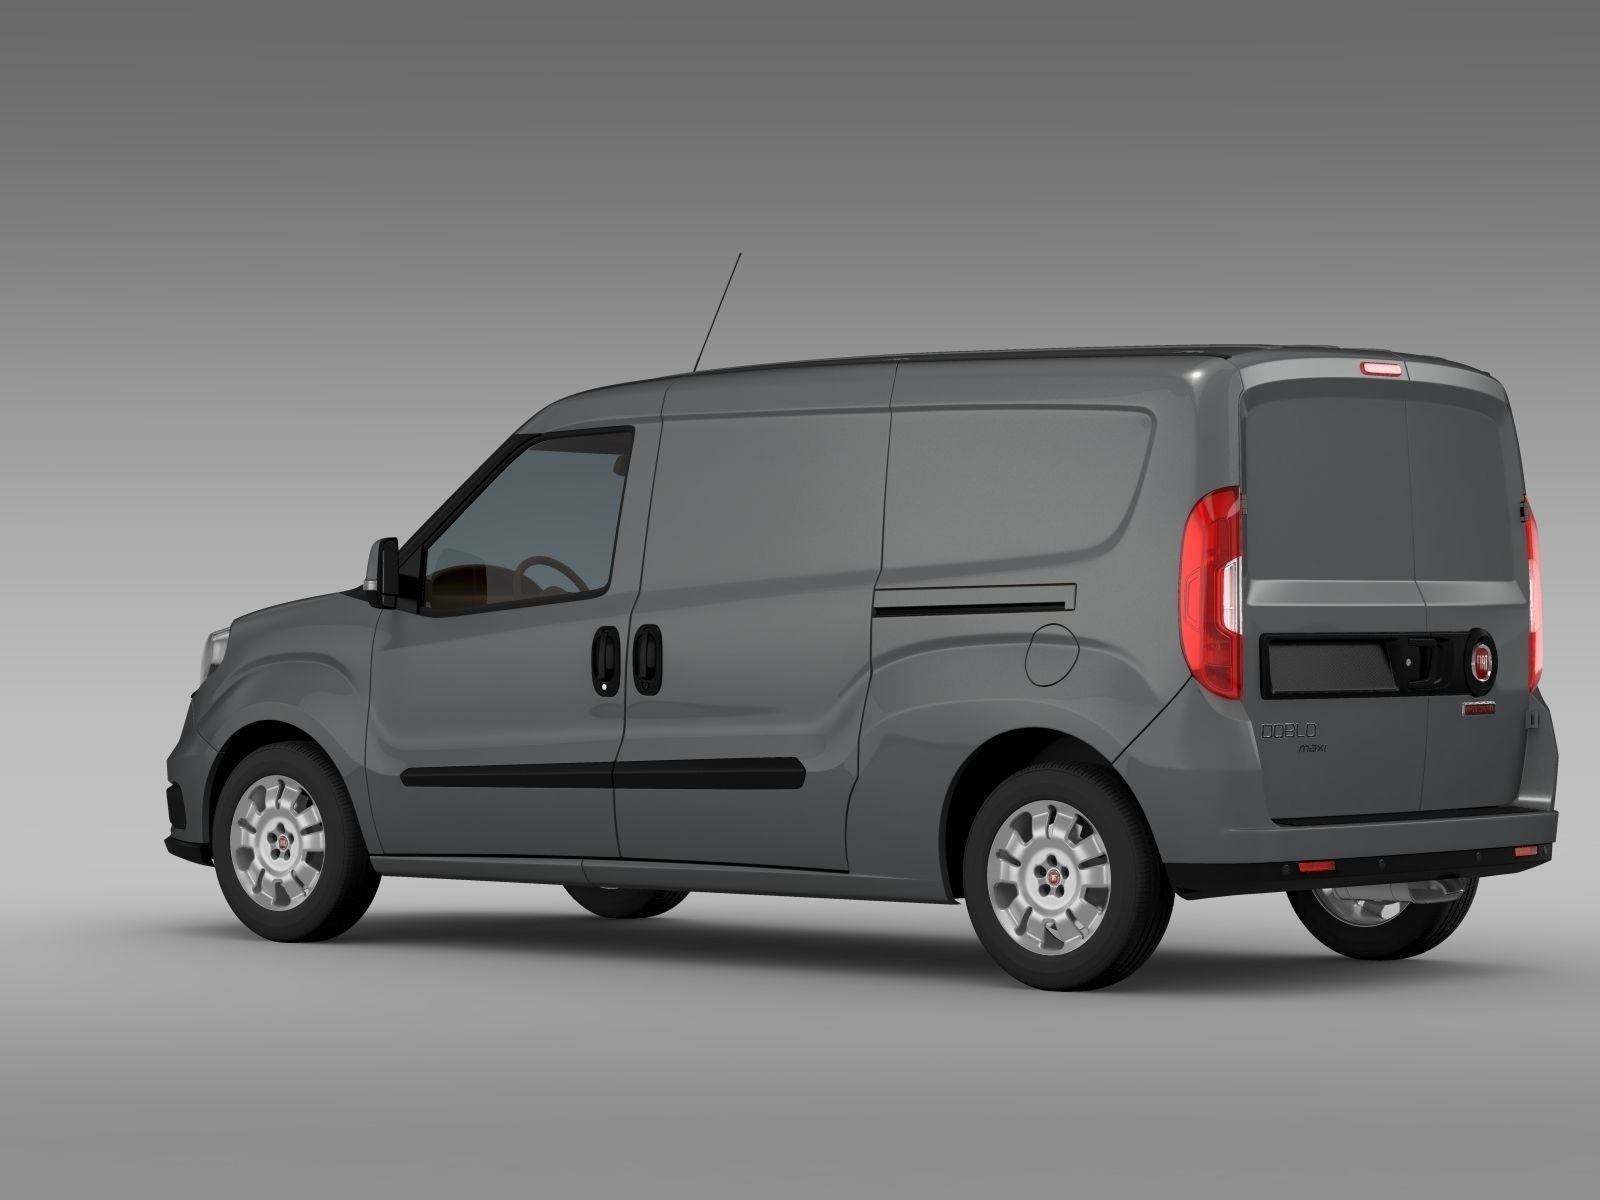 fiat doblo cargo maxi 263 2015 3d model max obj 3ds fbx c4d lwo lw lws. Black Bedroom Furniture Sets. Home Design Ideas